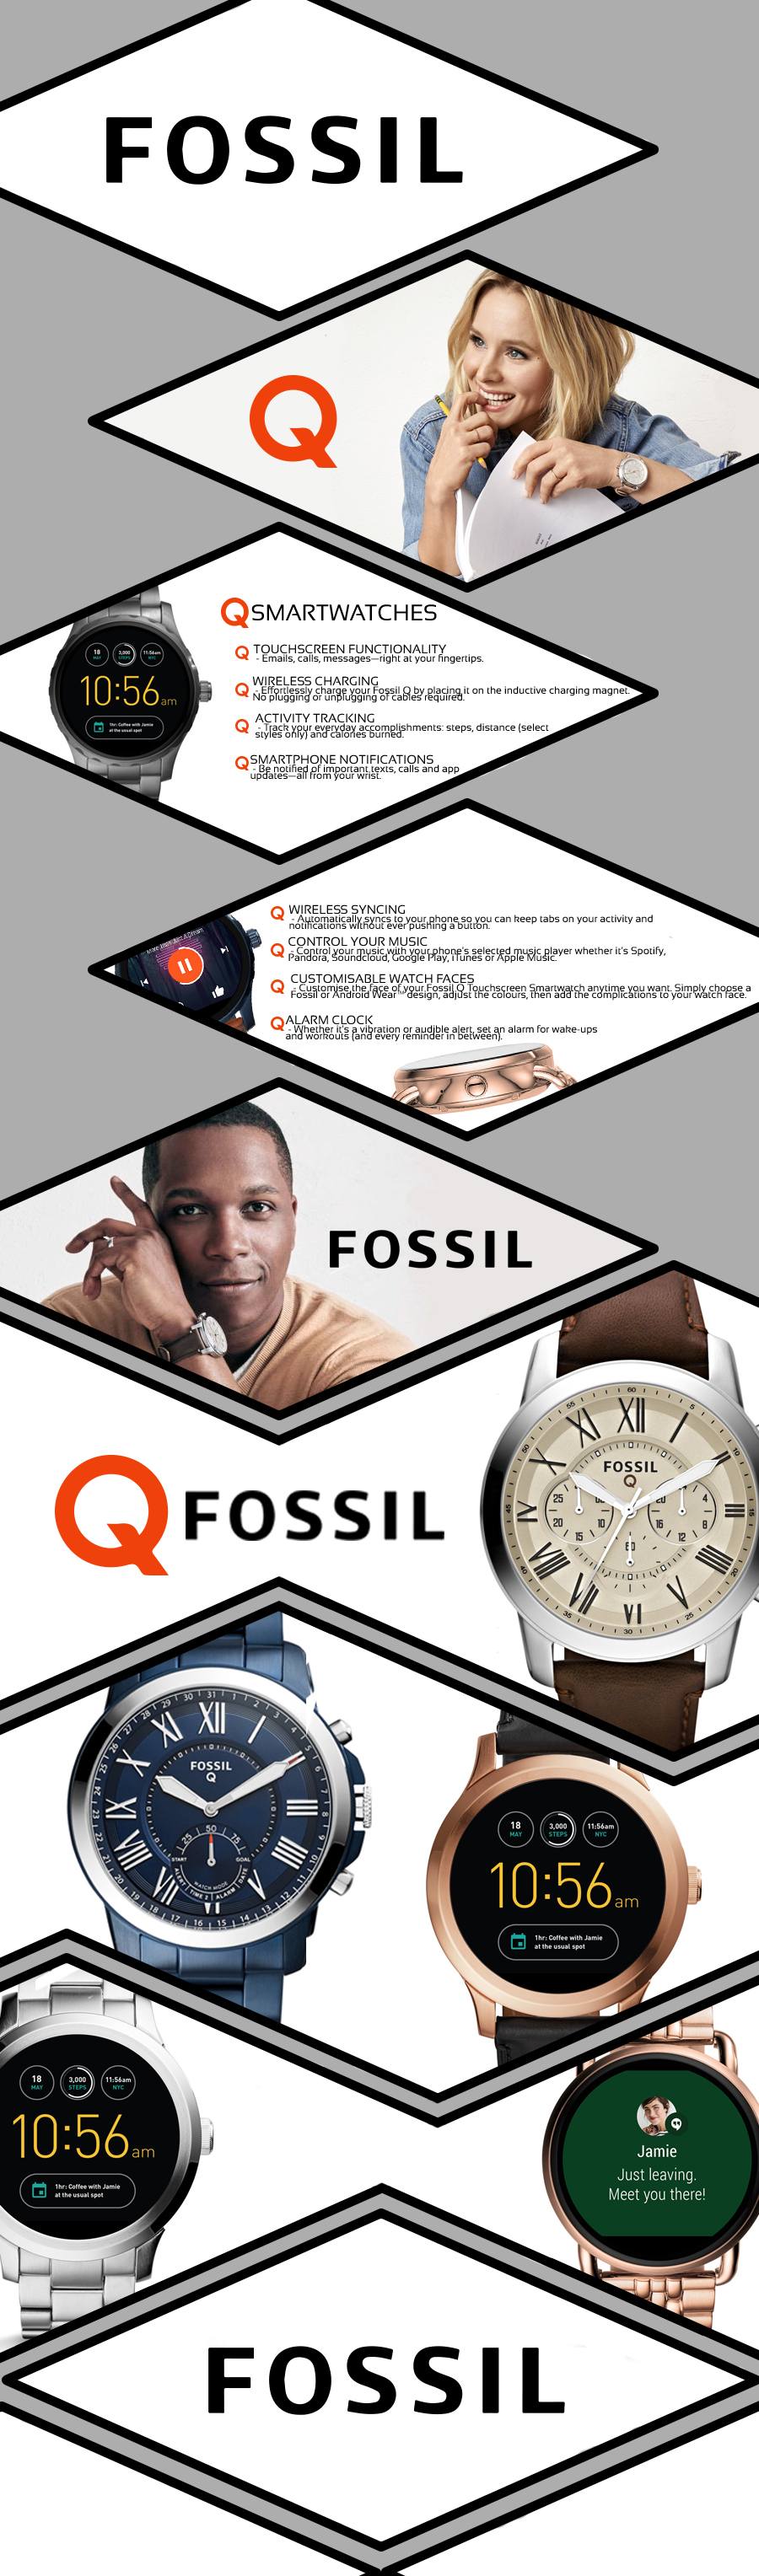 Fossil Q info graphic